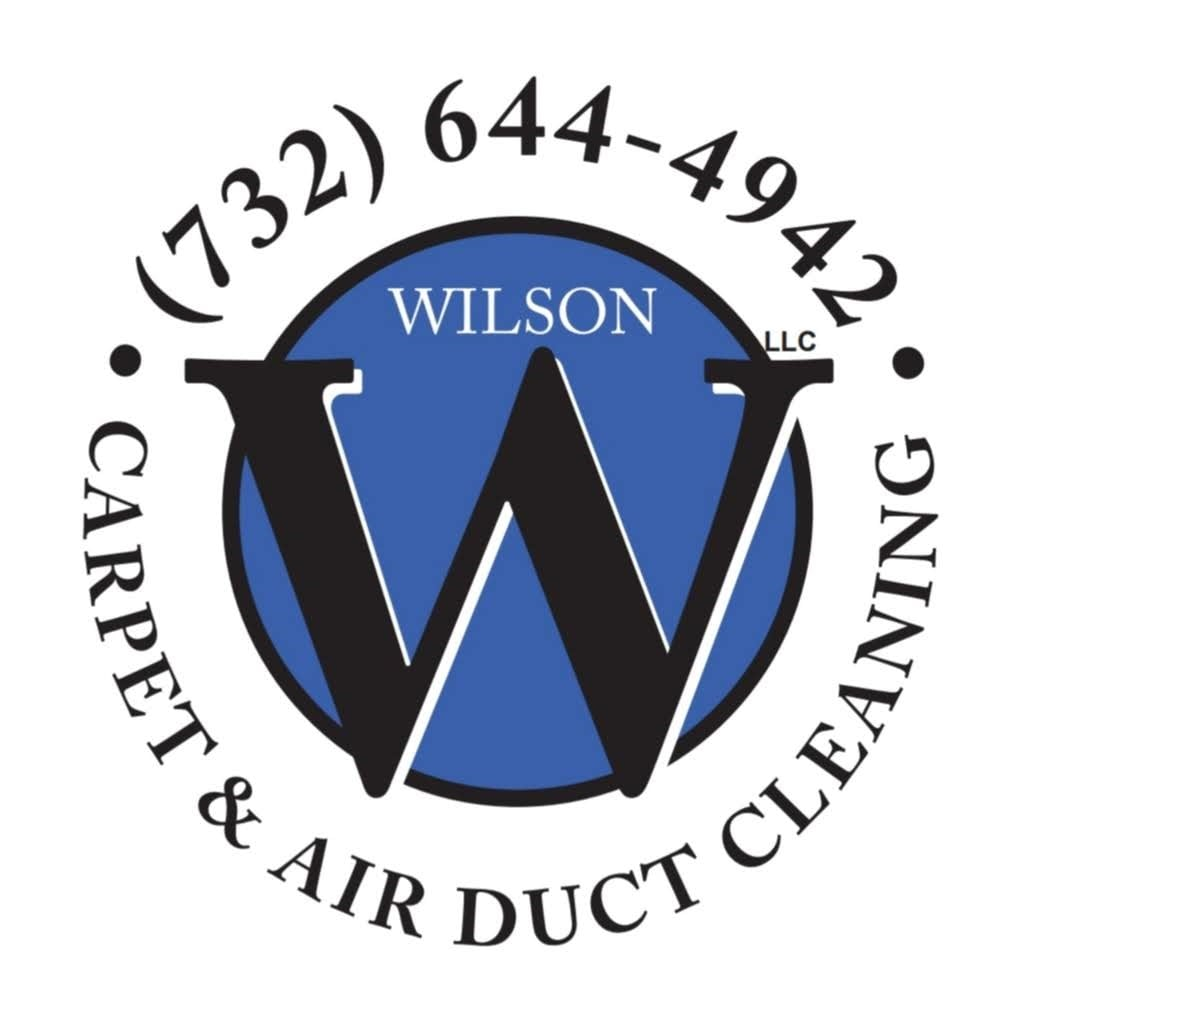 Wilson Carpet & Air Duct Cleaning, LLC